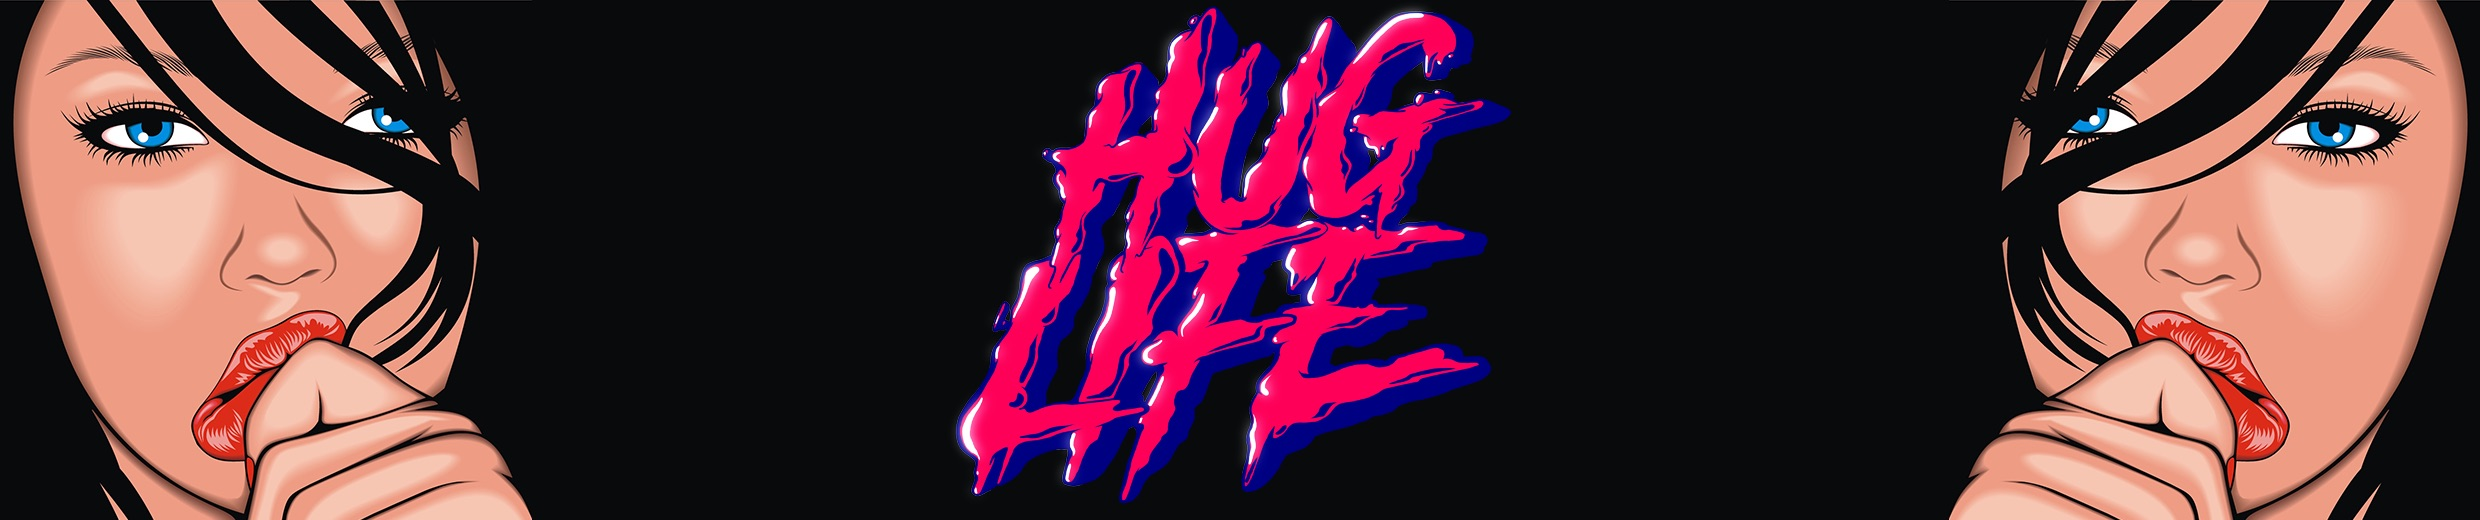 Wicked Games - HugLife Remix FREE DOWNLOAD by ItsHuglife   Its